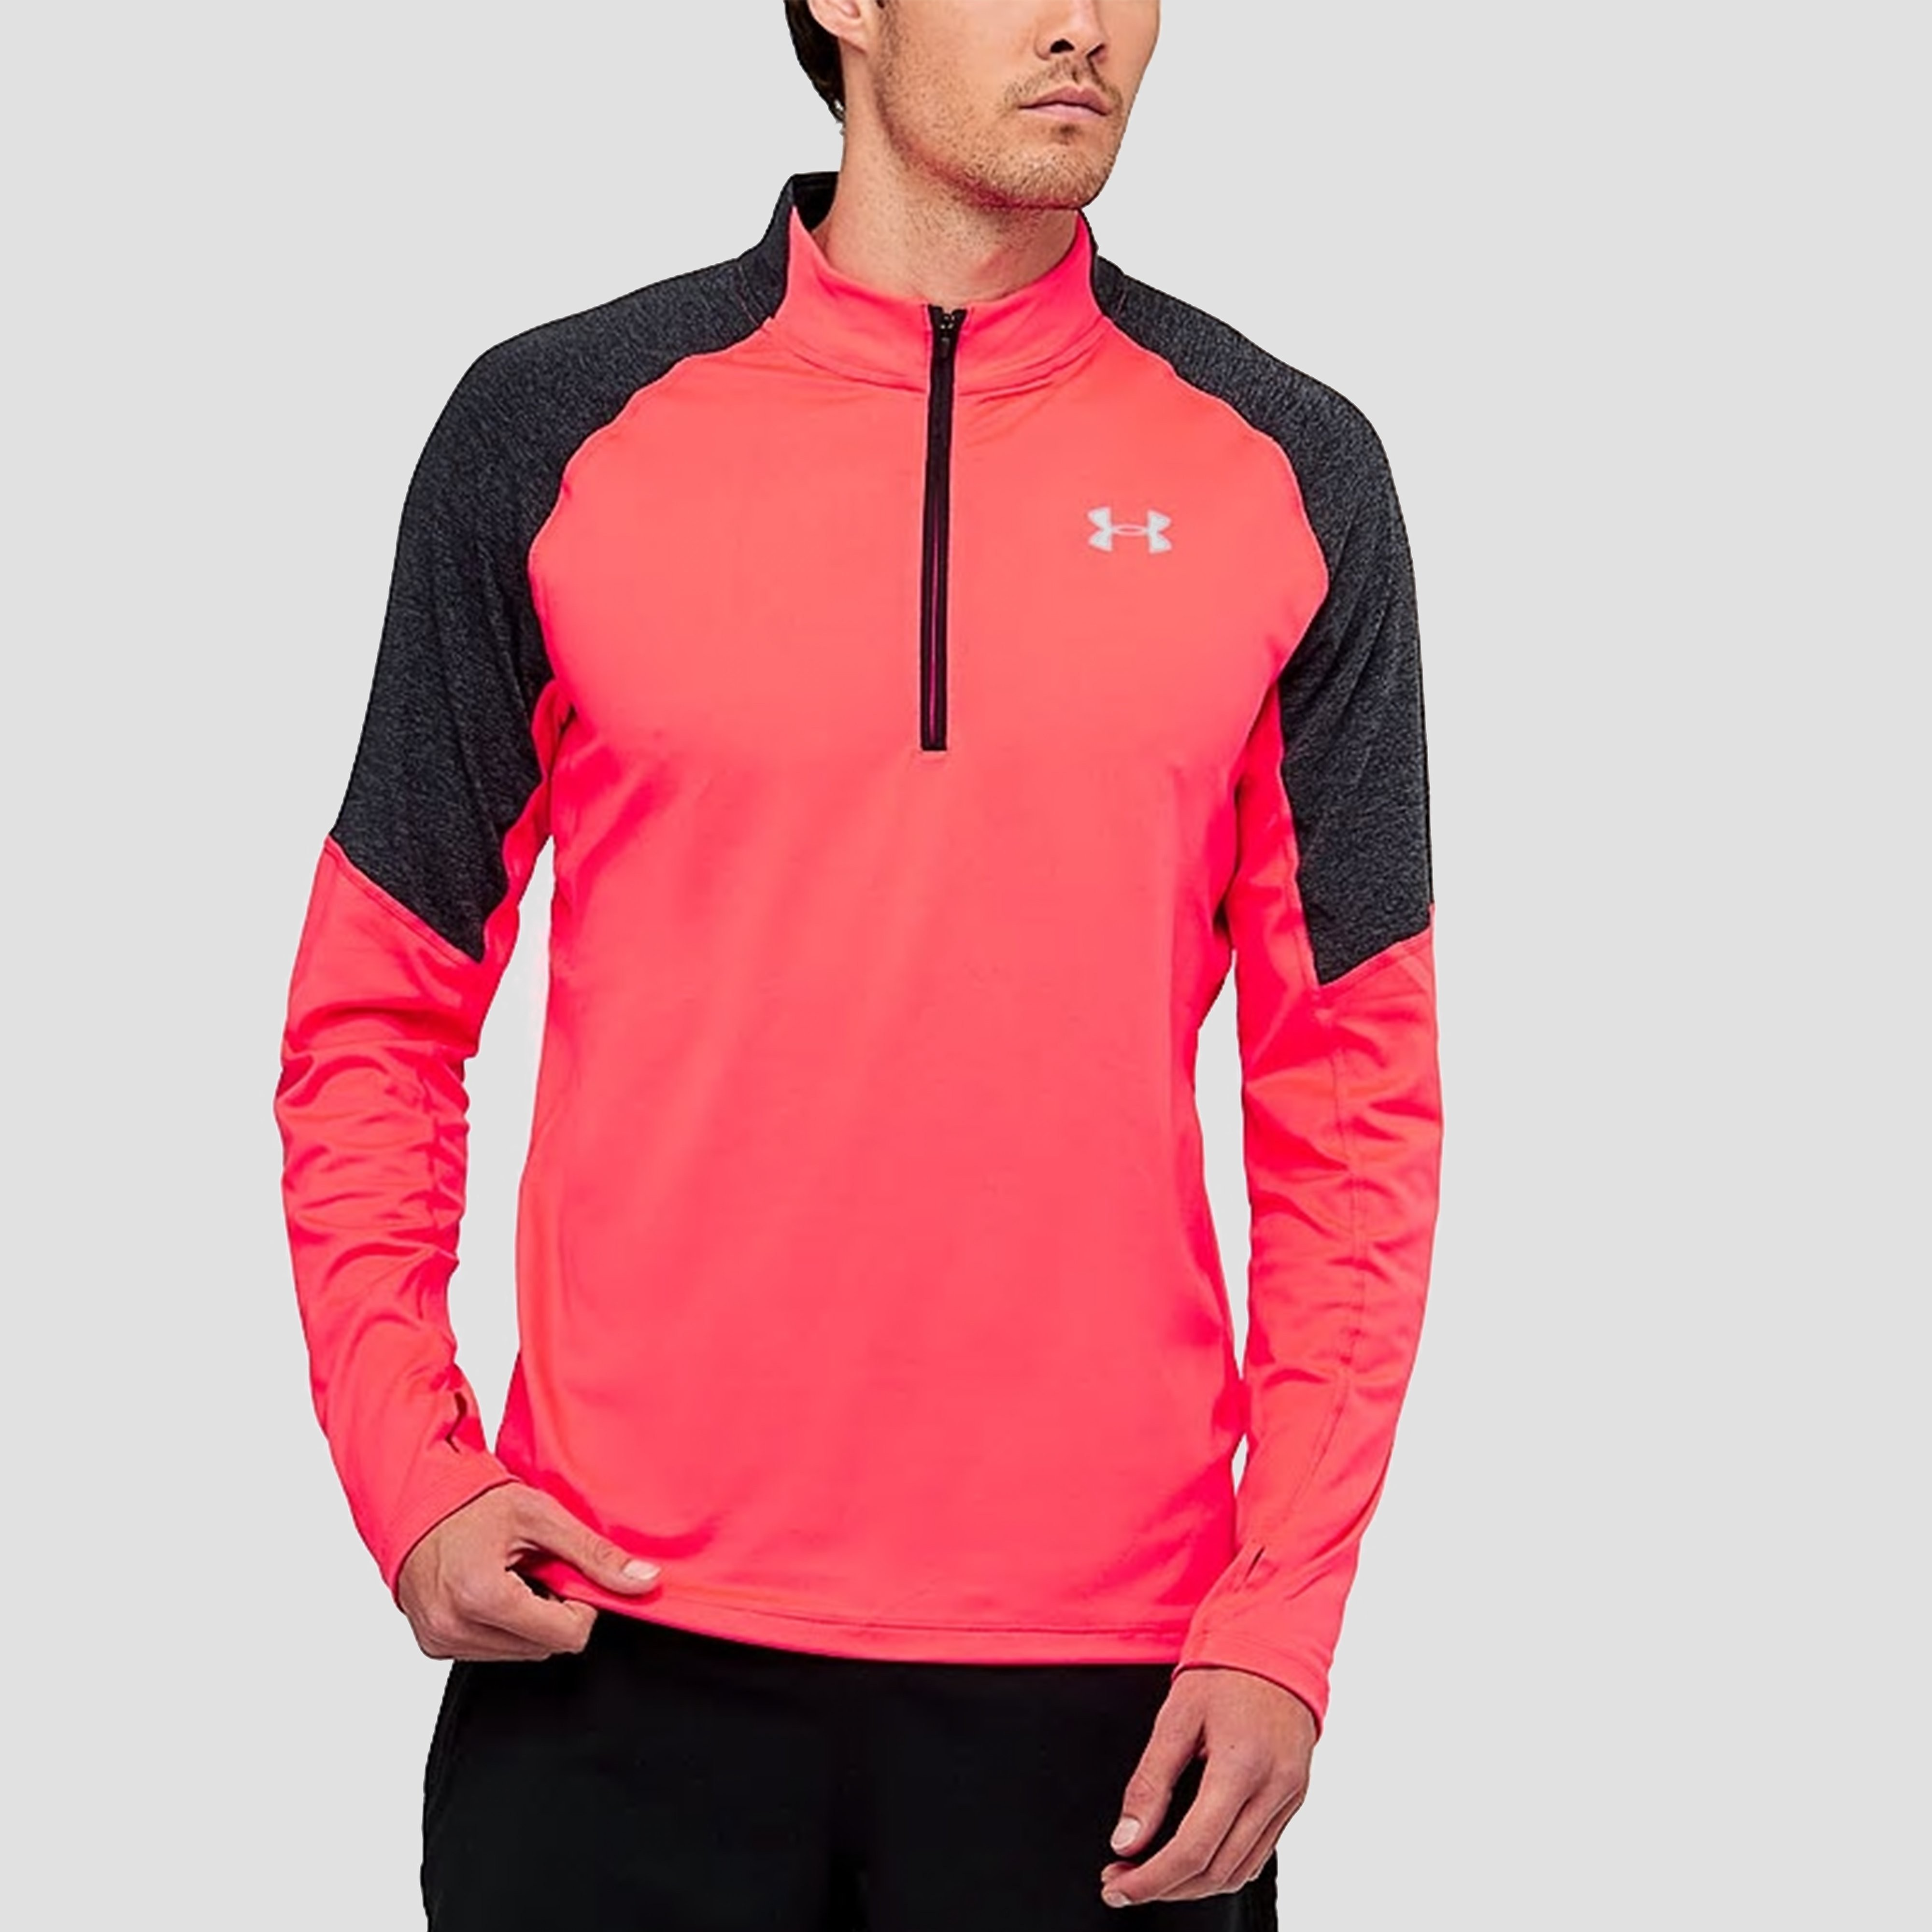 UNDER ARMOUR THREADBORNE HARDLOOPSHIRT 42826 RITS ROOD HEREN